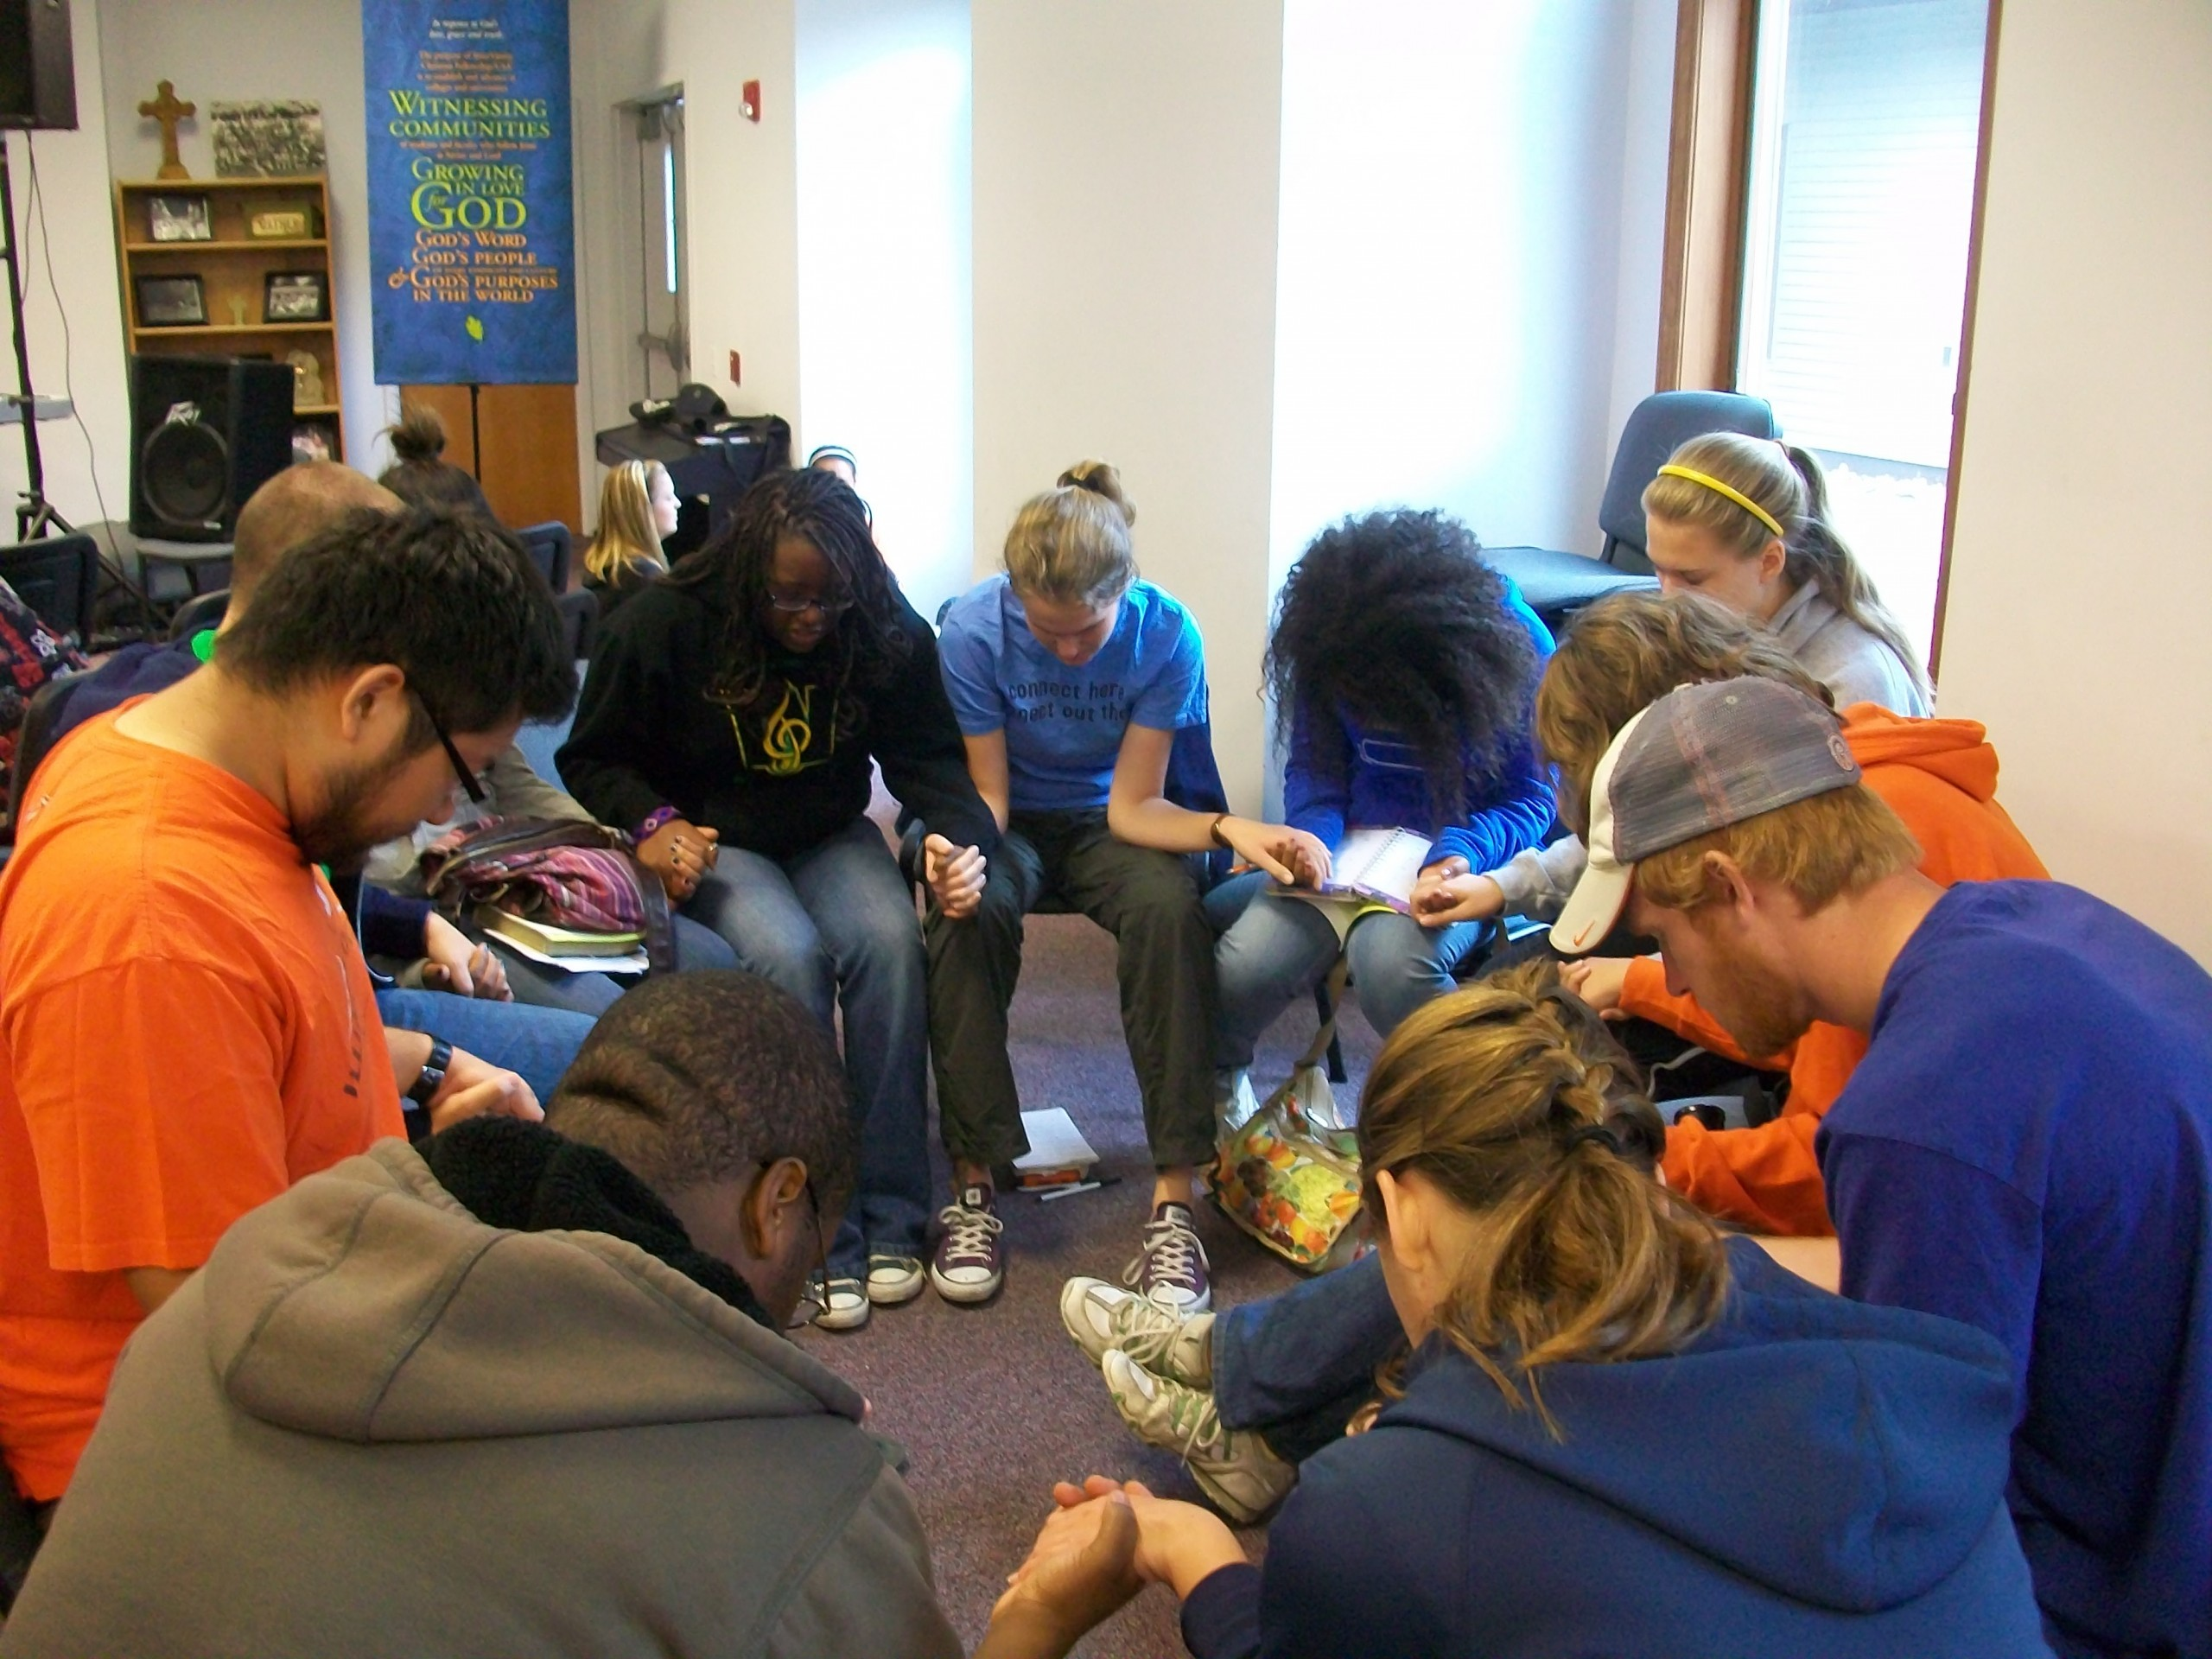 Inter-City Christian Fellowship provides support for students